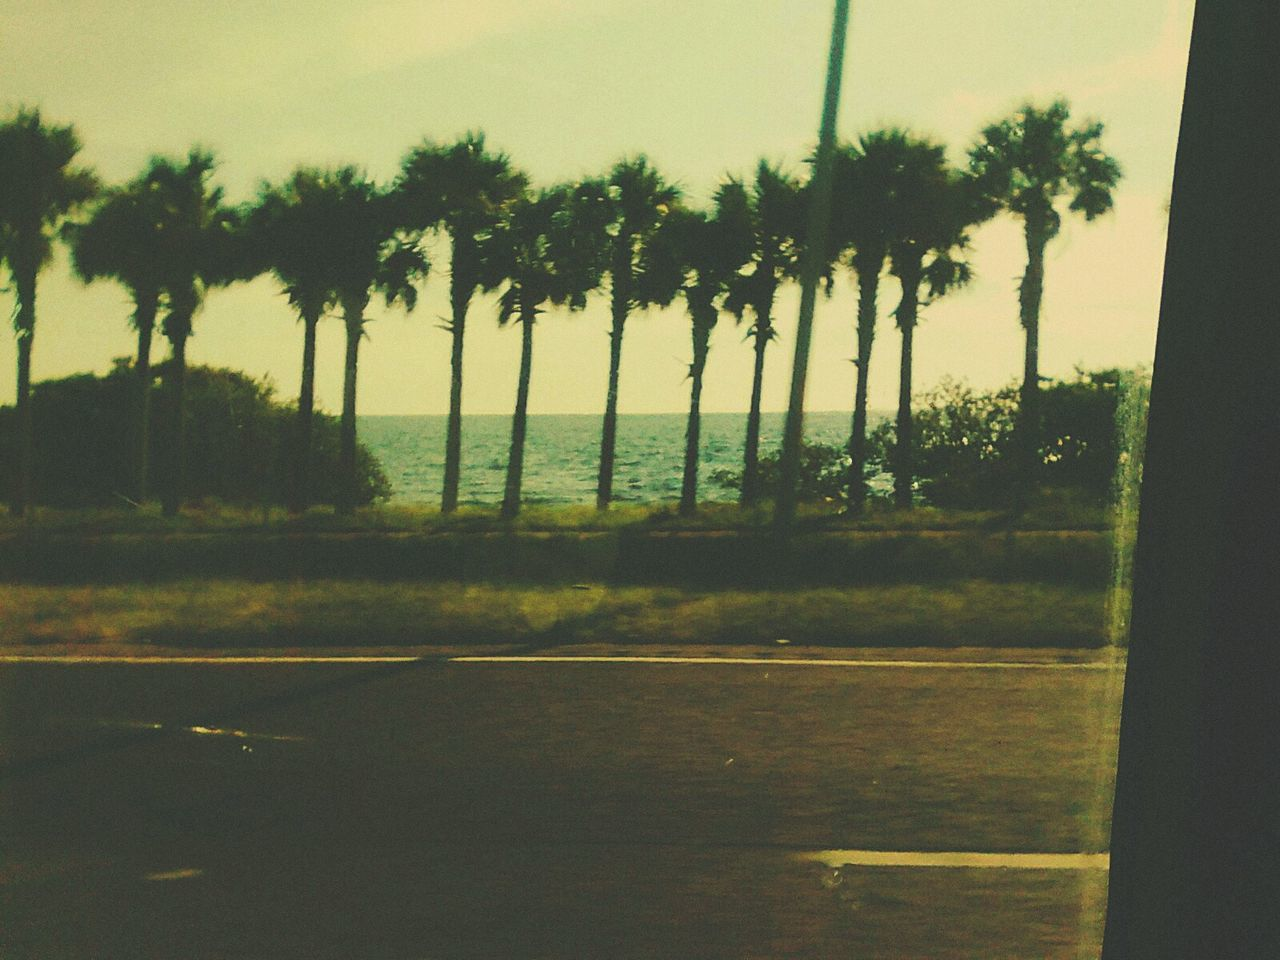 Scenics Remote Nature Paradise Palm Trees Row Of Palms Row Of Palm Trees On The Road Outdoors Florida Florida Nature Florida Life Florida Beauty Beauty In Nature Solitude Trees Tropical Tropical Paradise Tropical Beauty EyeEm Nature Lover Tranquility Water Sunny Sky Sunny Side Of Life Driving